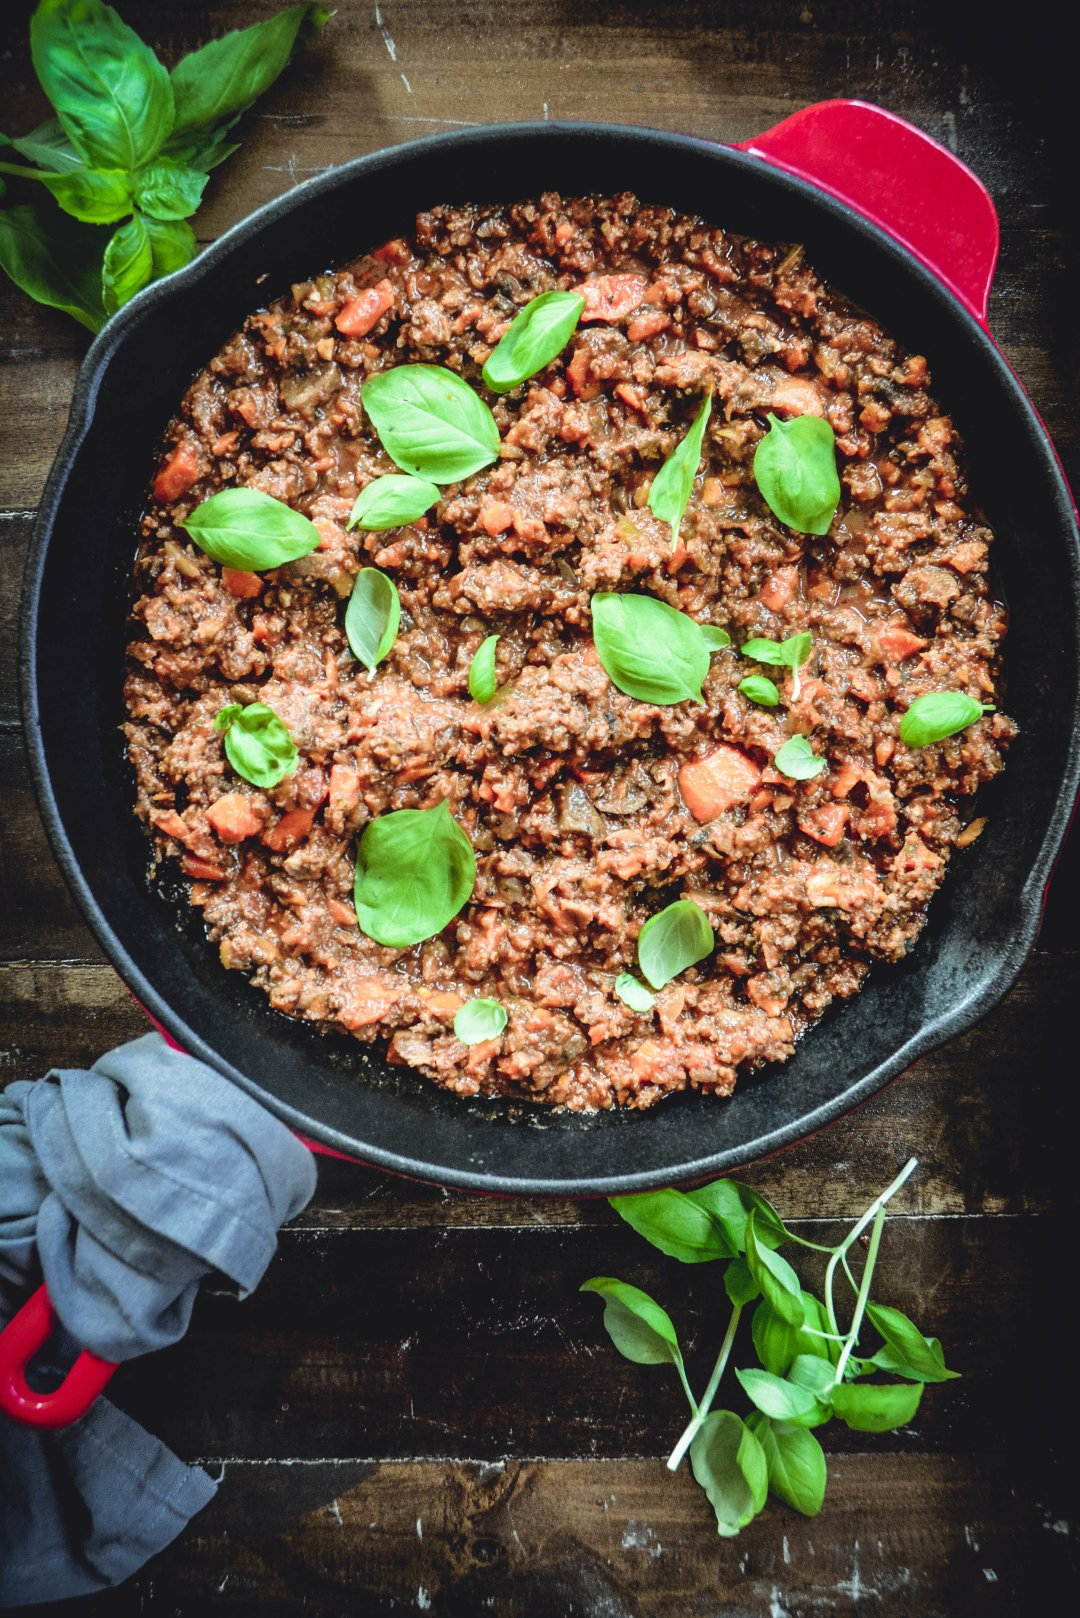 Want the ultimate comfort food? Bolognese sauce does it for me and I think you'll agree! With a few shortcuts this sauce can be ready in 45 minutes. It's loaded with vegetables, when served over zucchini noodles, it's low carb, paleo and whole 30. Check it out! #bolognesesauce, #bolognese, #paleo, #whole30, #meatsauce, #realfood, #calmeats, #lowcarb, #keto, #dairyfree, #glutenfree, #zucchininoodles, #zoodles